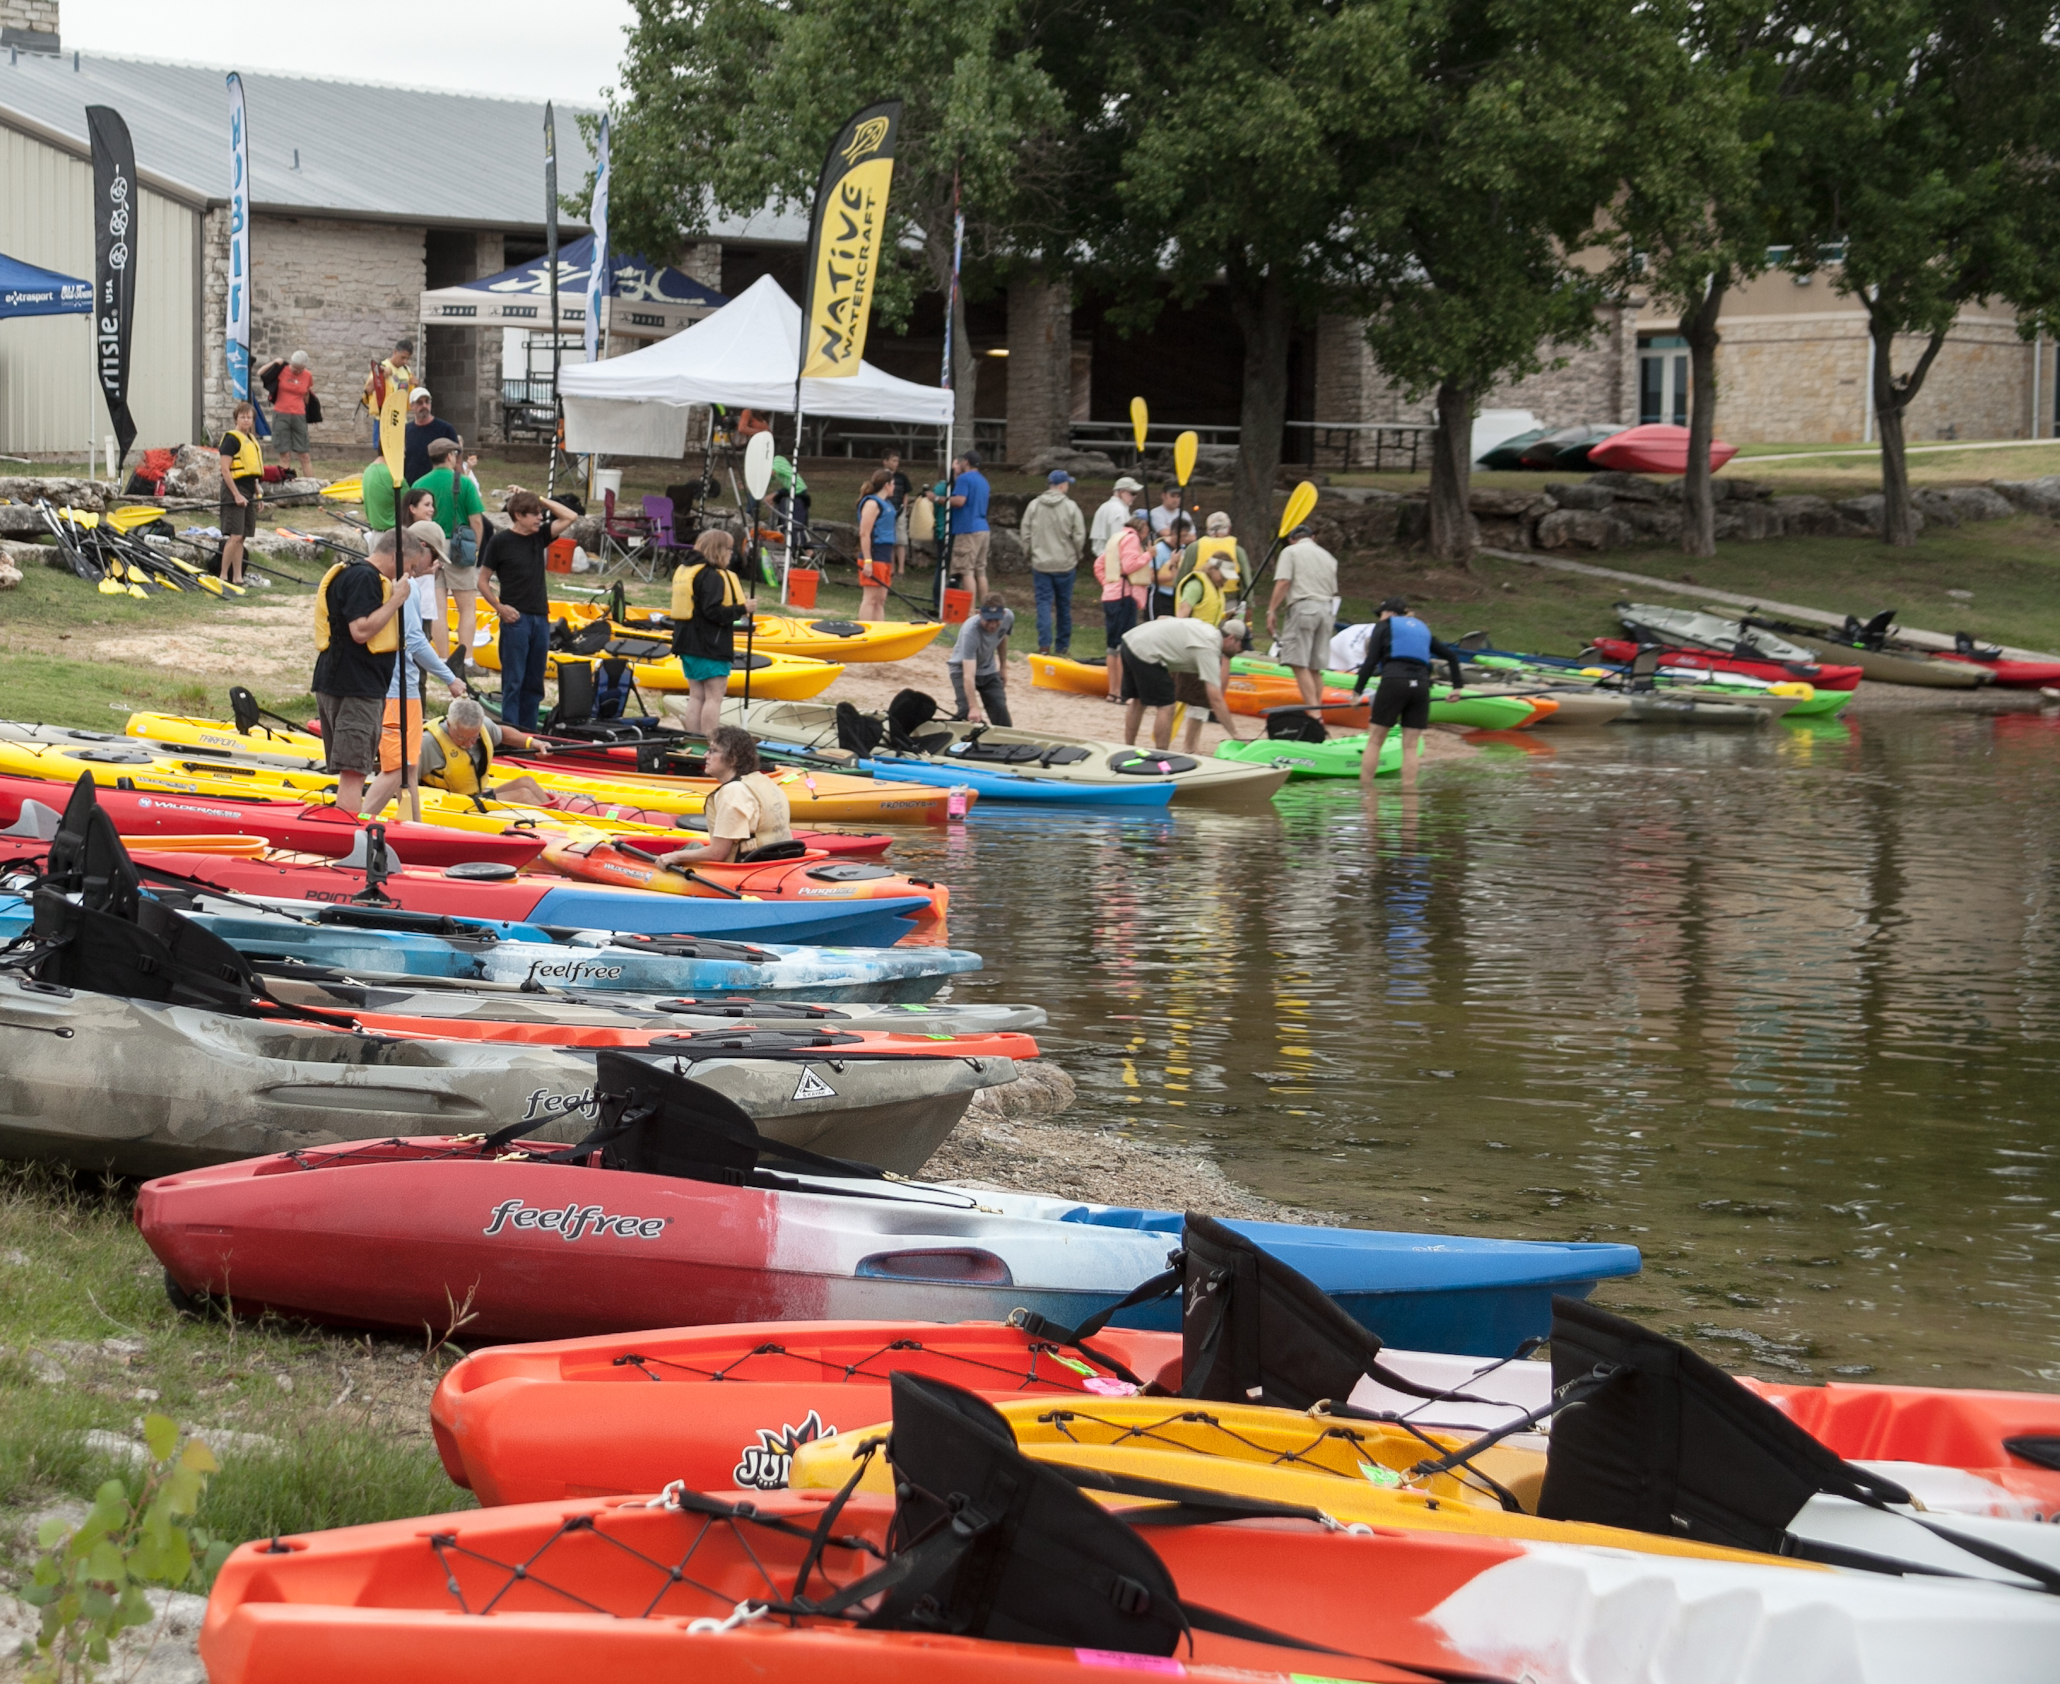 ACK Supports Local Paddlesports Community With 8th Annual Spring Demo Days Event